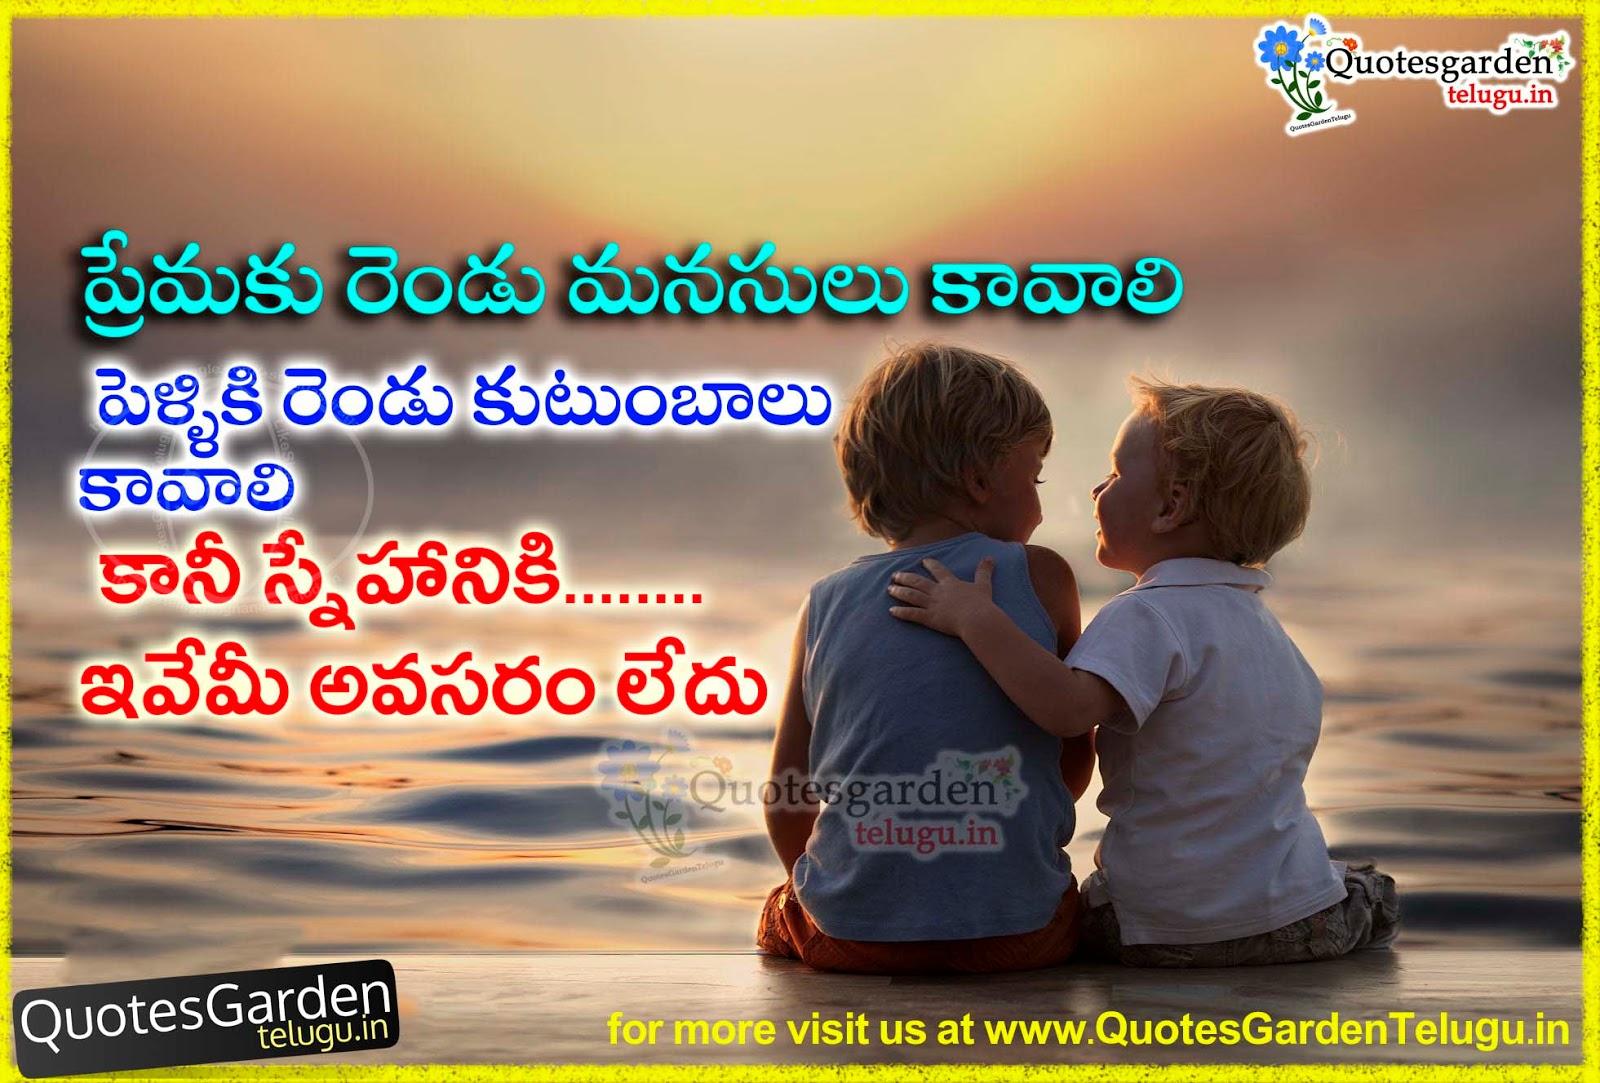 Great Quotes About Friendship Collection Of All Time Best Friendship Quotes In Telugu Forever